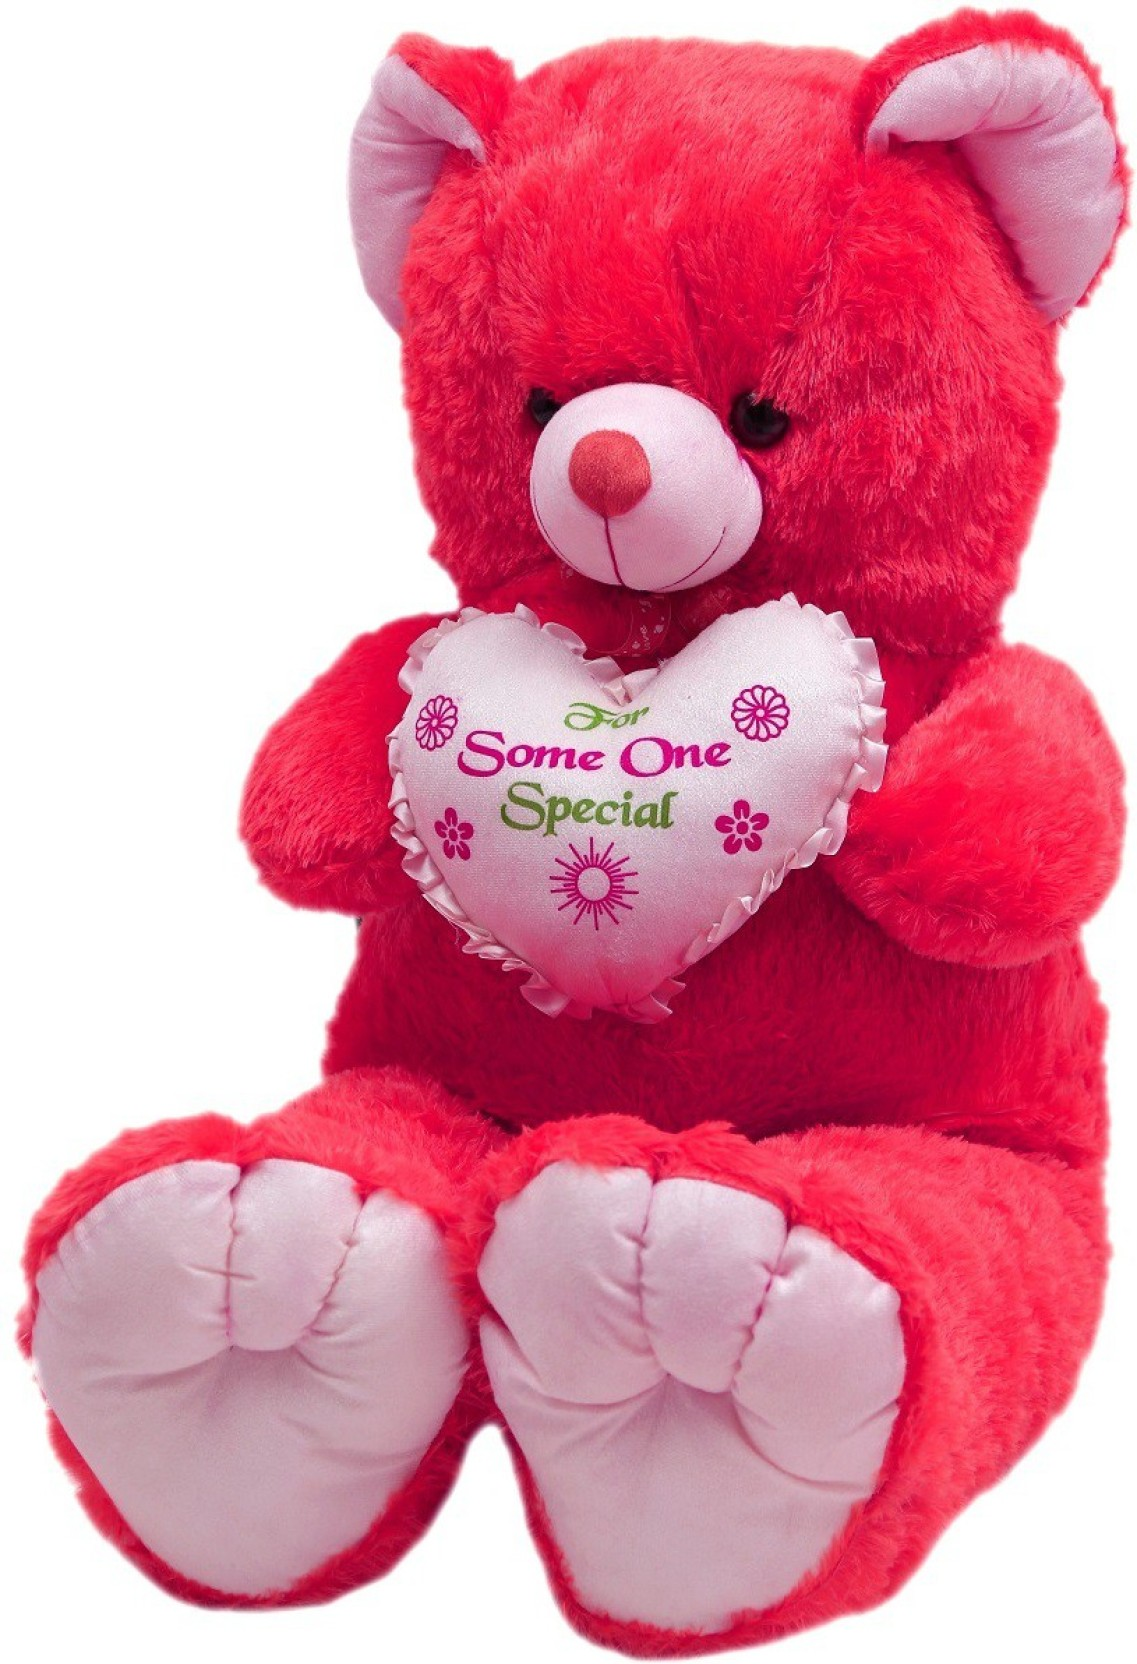 Toynjoy 5 Feet Cute Soft Cuddly Beautiful Carrot Colored Teddy Cuddle Me Pajamas Red The Angry Birds Movie Home